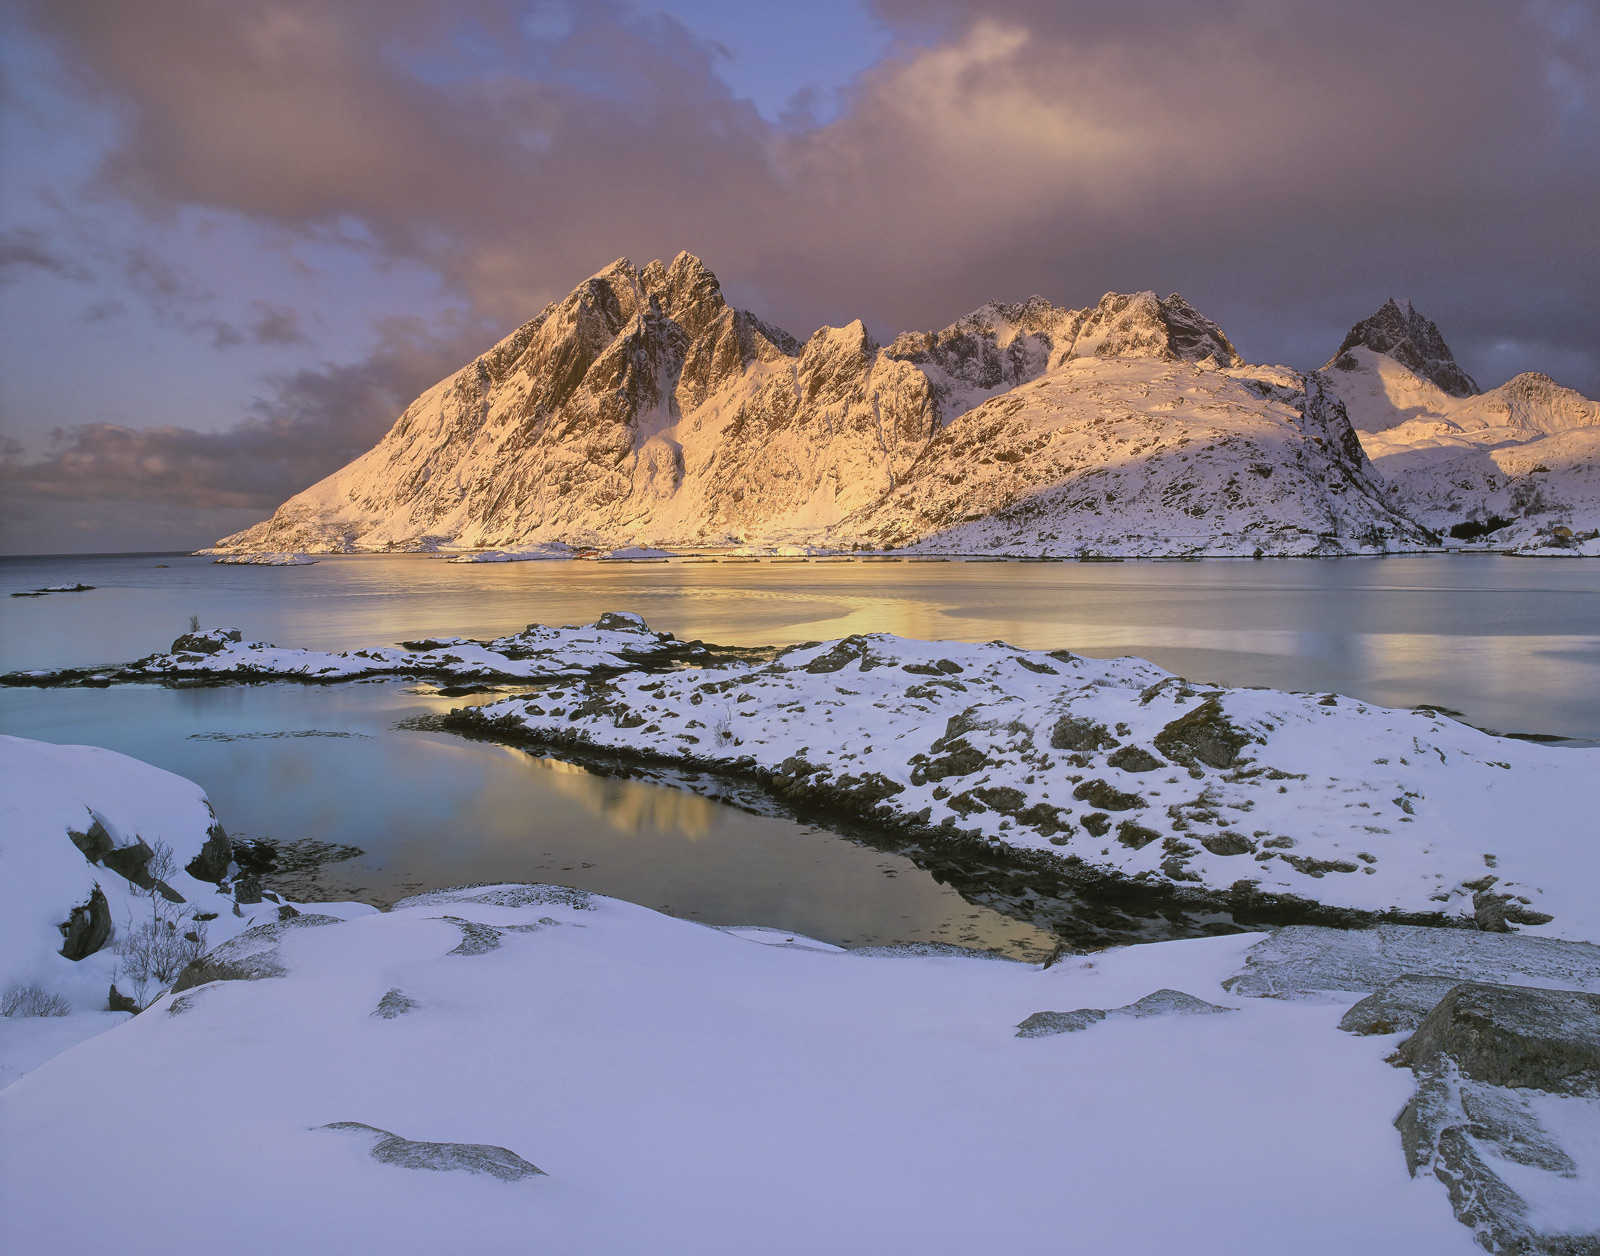 One of my personal favourite viewpoints on Lofoten. The view across the fjord towards the peaks surrounding Reine is at...